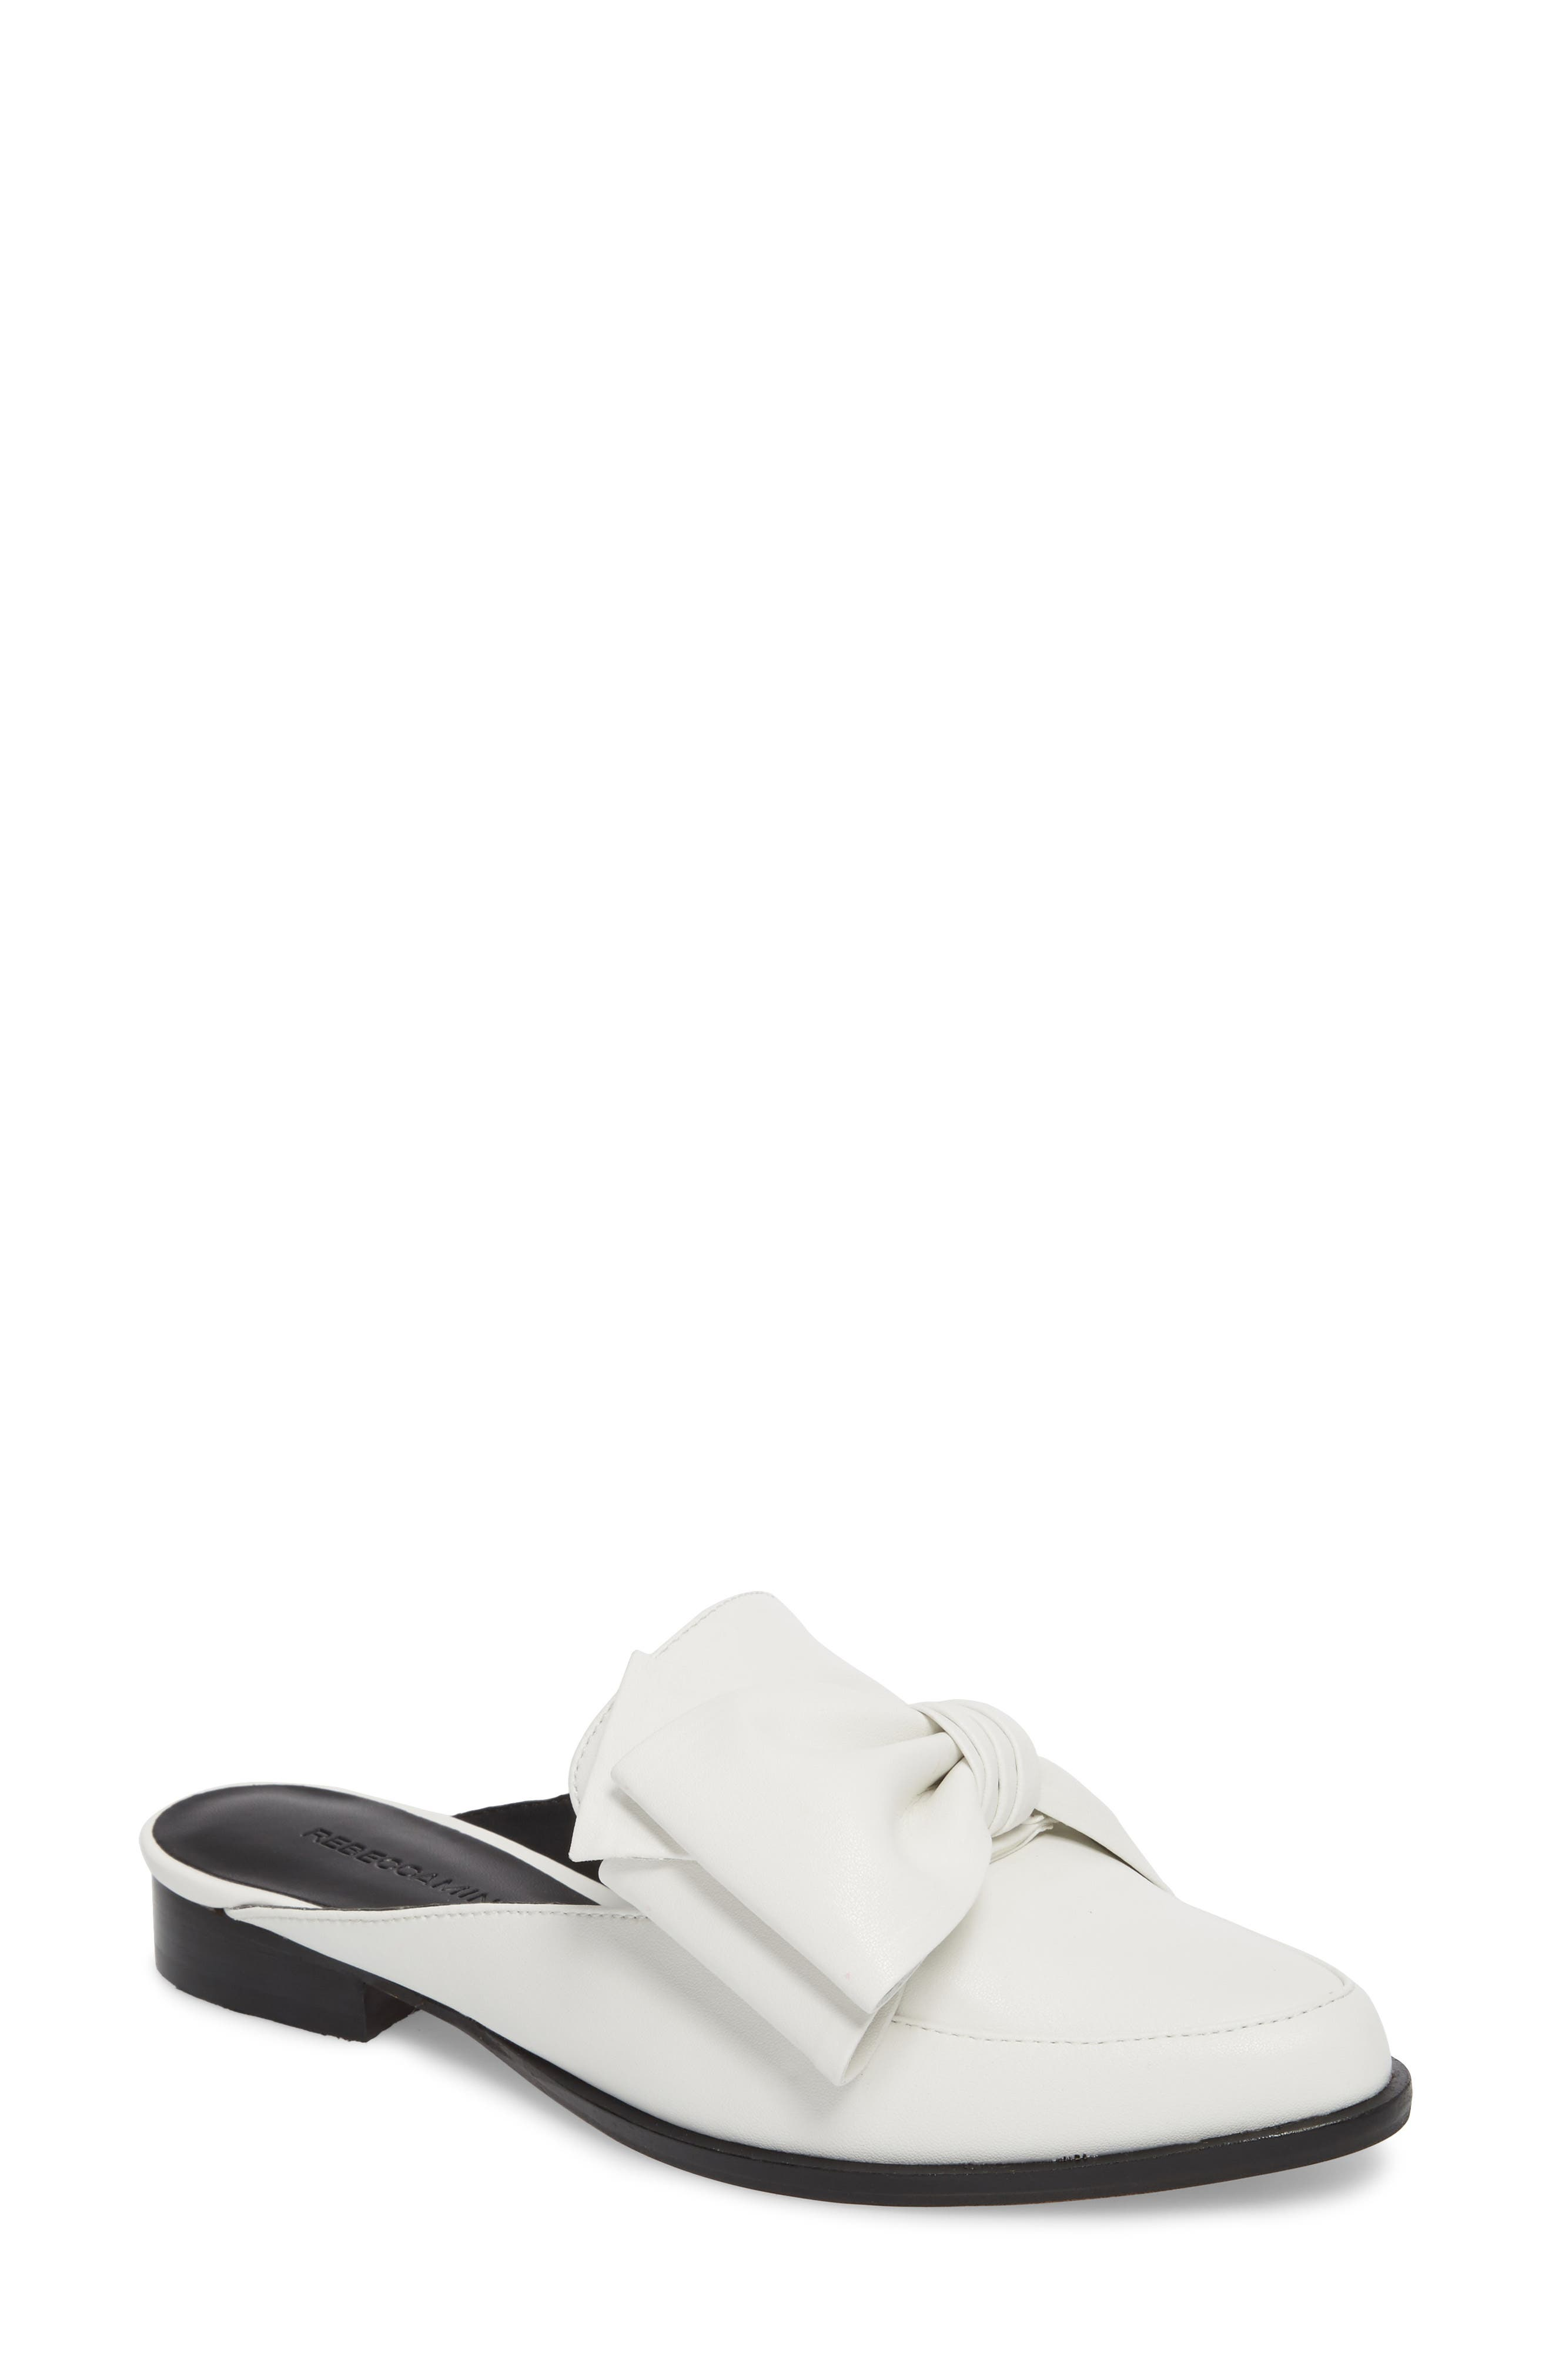 Mabel Loafer Mule,                             Main thumbnail 1, color,                             OPTIC WHITE LEATHER